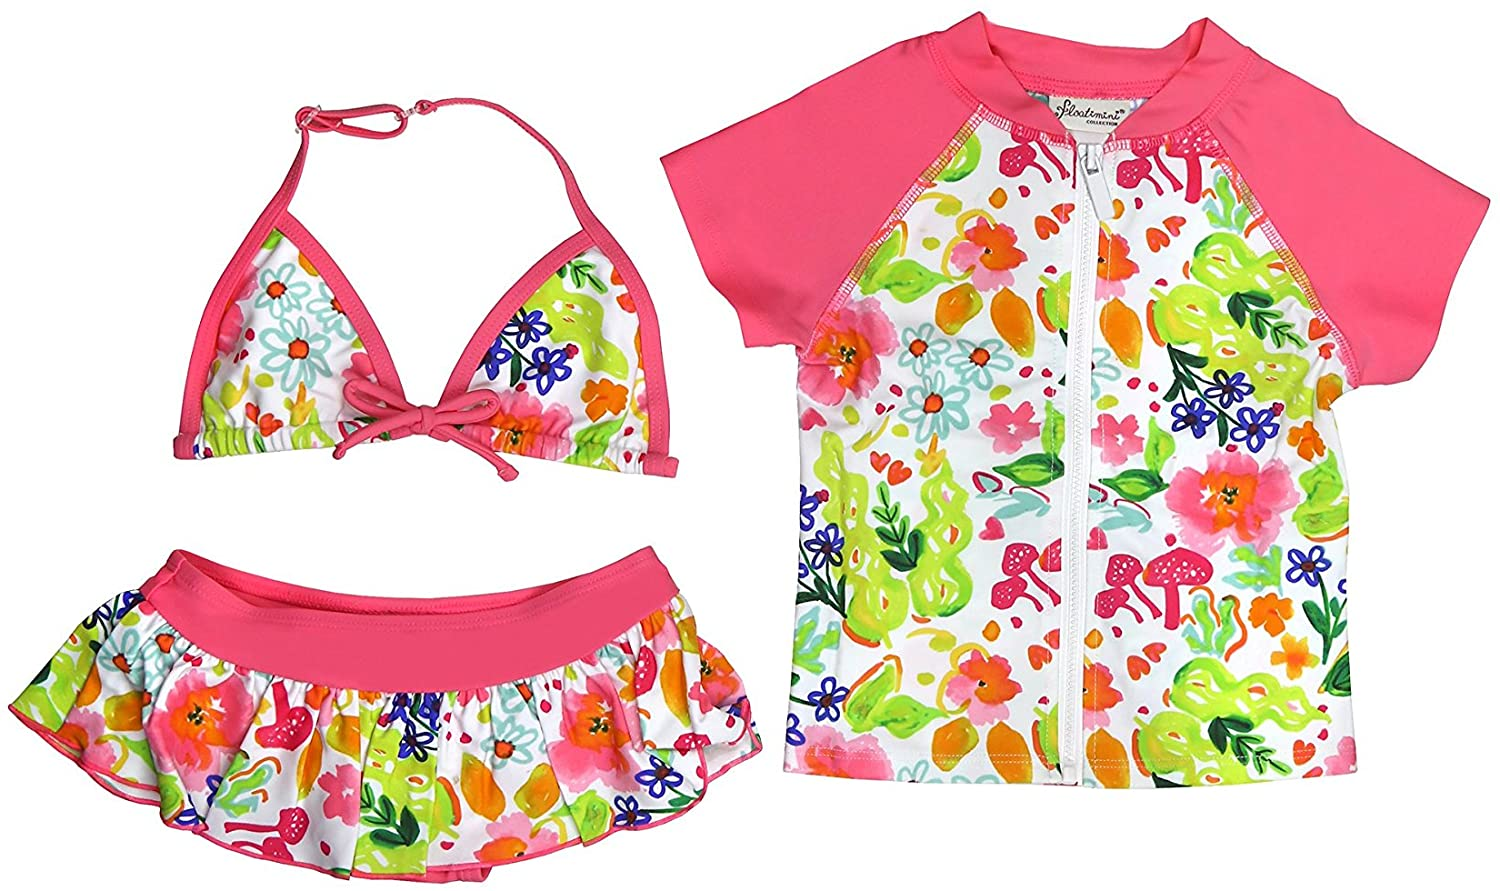 Floatimini Little Girls' Flower Garden Bikini & Short Sleeve Rash Guard 3 pc Set